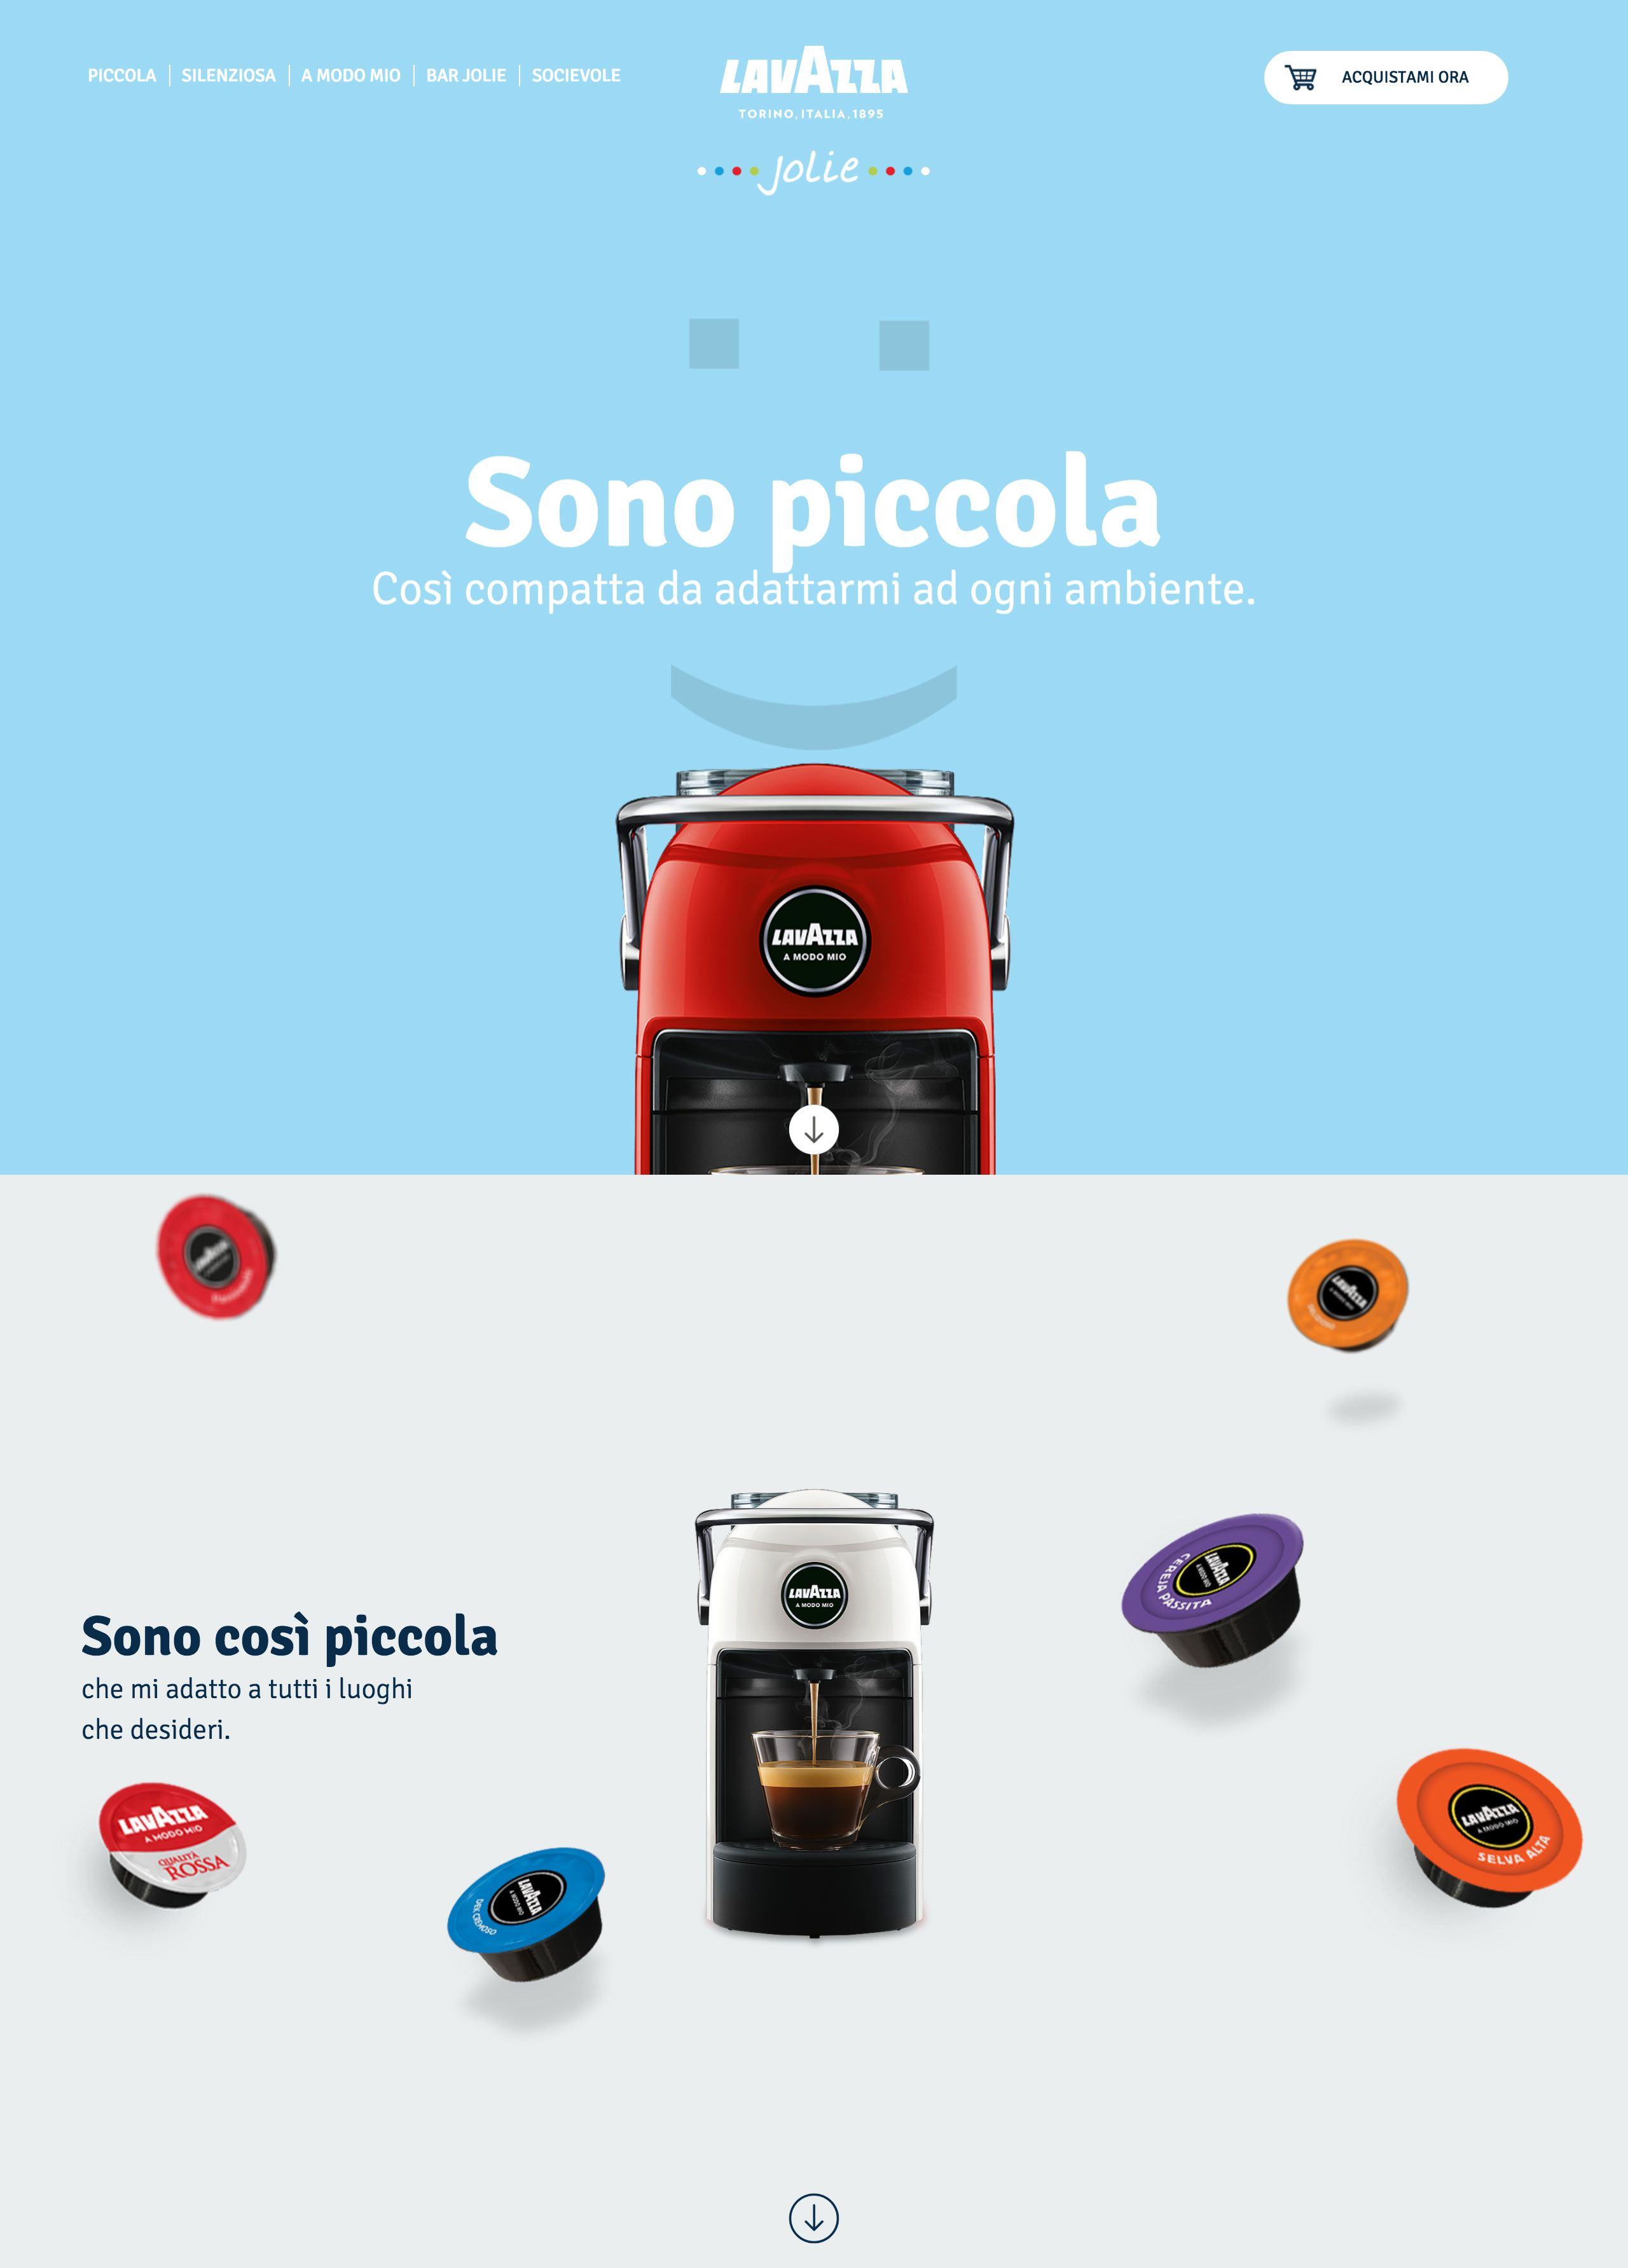 Dedicated landing page promoting the new 'Jolie' coffee